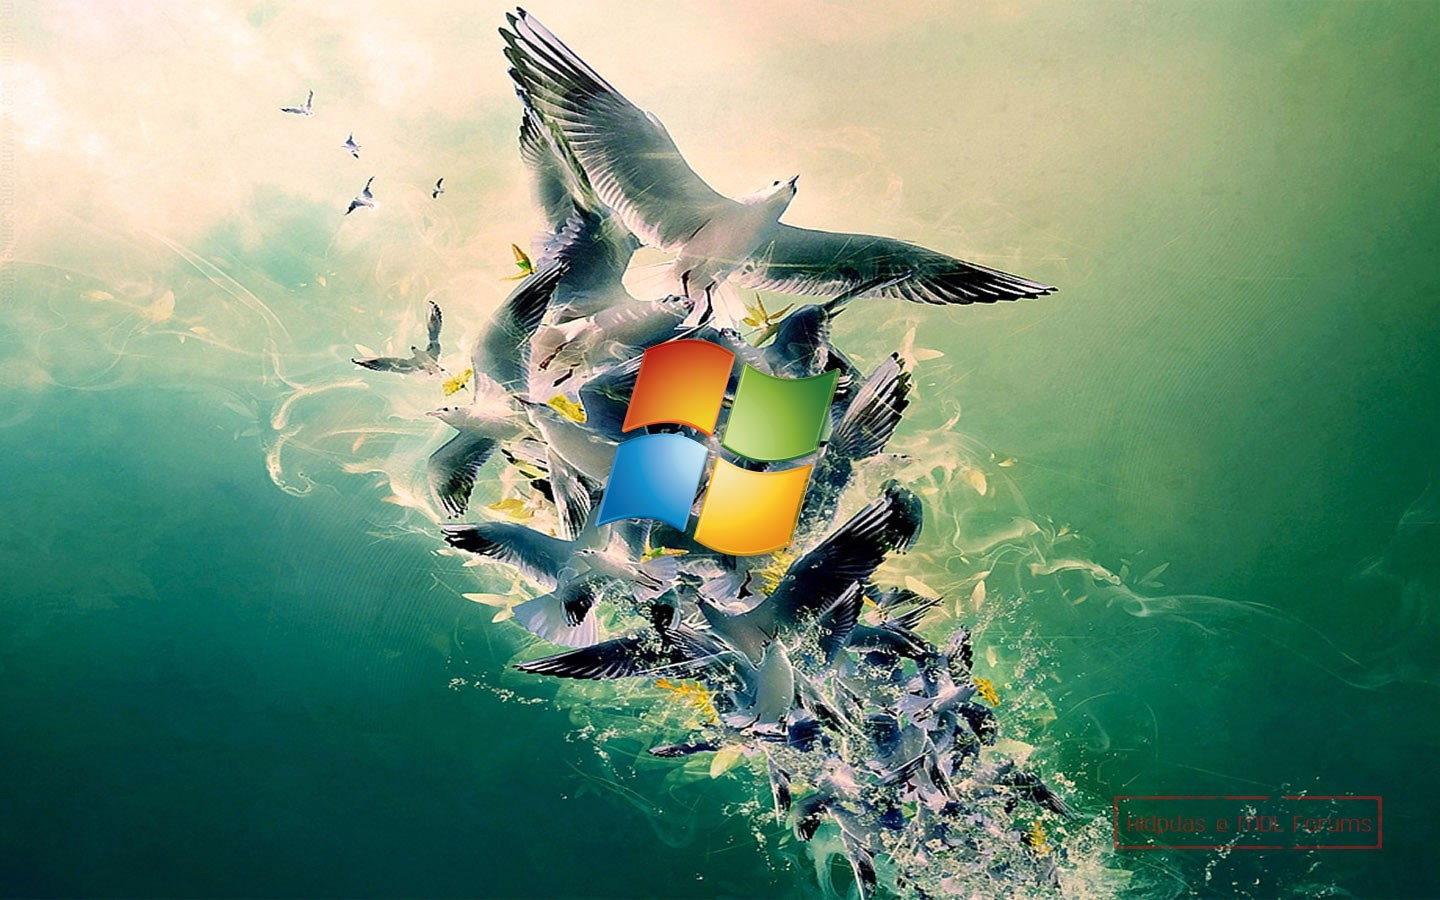 Free high definition wallpapers windows 8 wallpapers free - High definition love wallpapers 1080p download ...